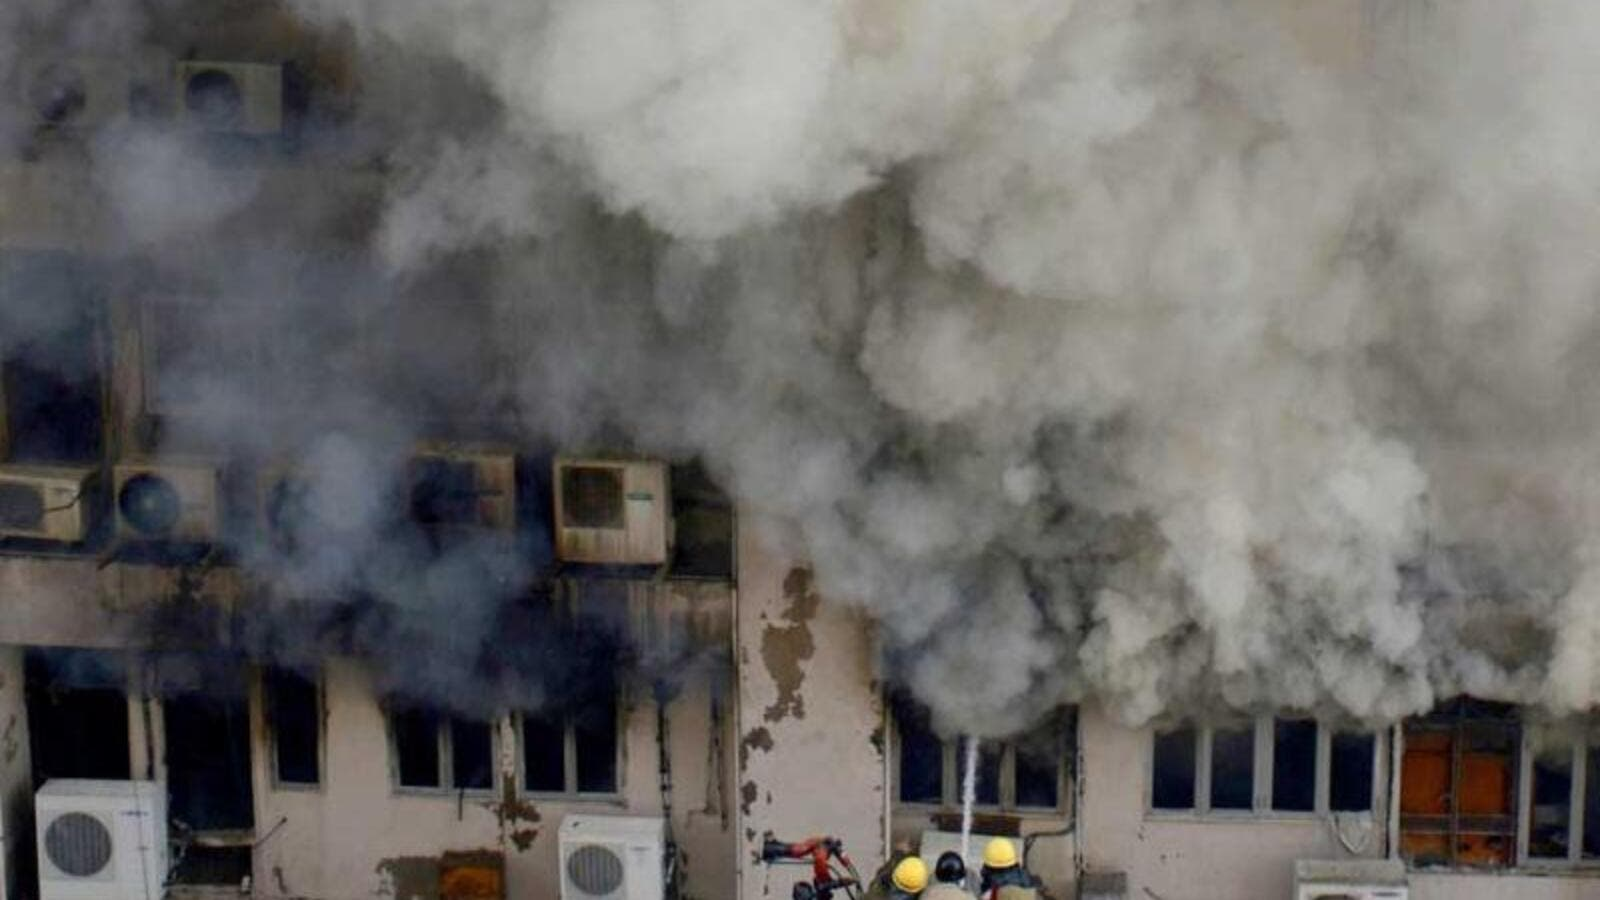 A house fire in Nabatieh killed A Palestinian family in Nabatieh. (AFP/ File Photo)